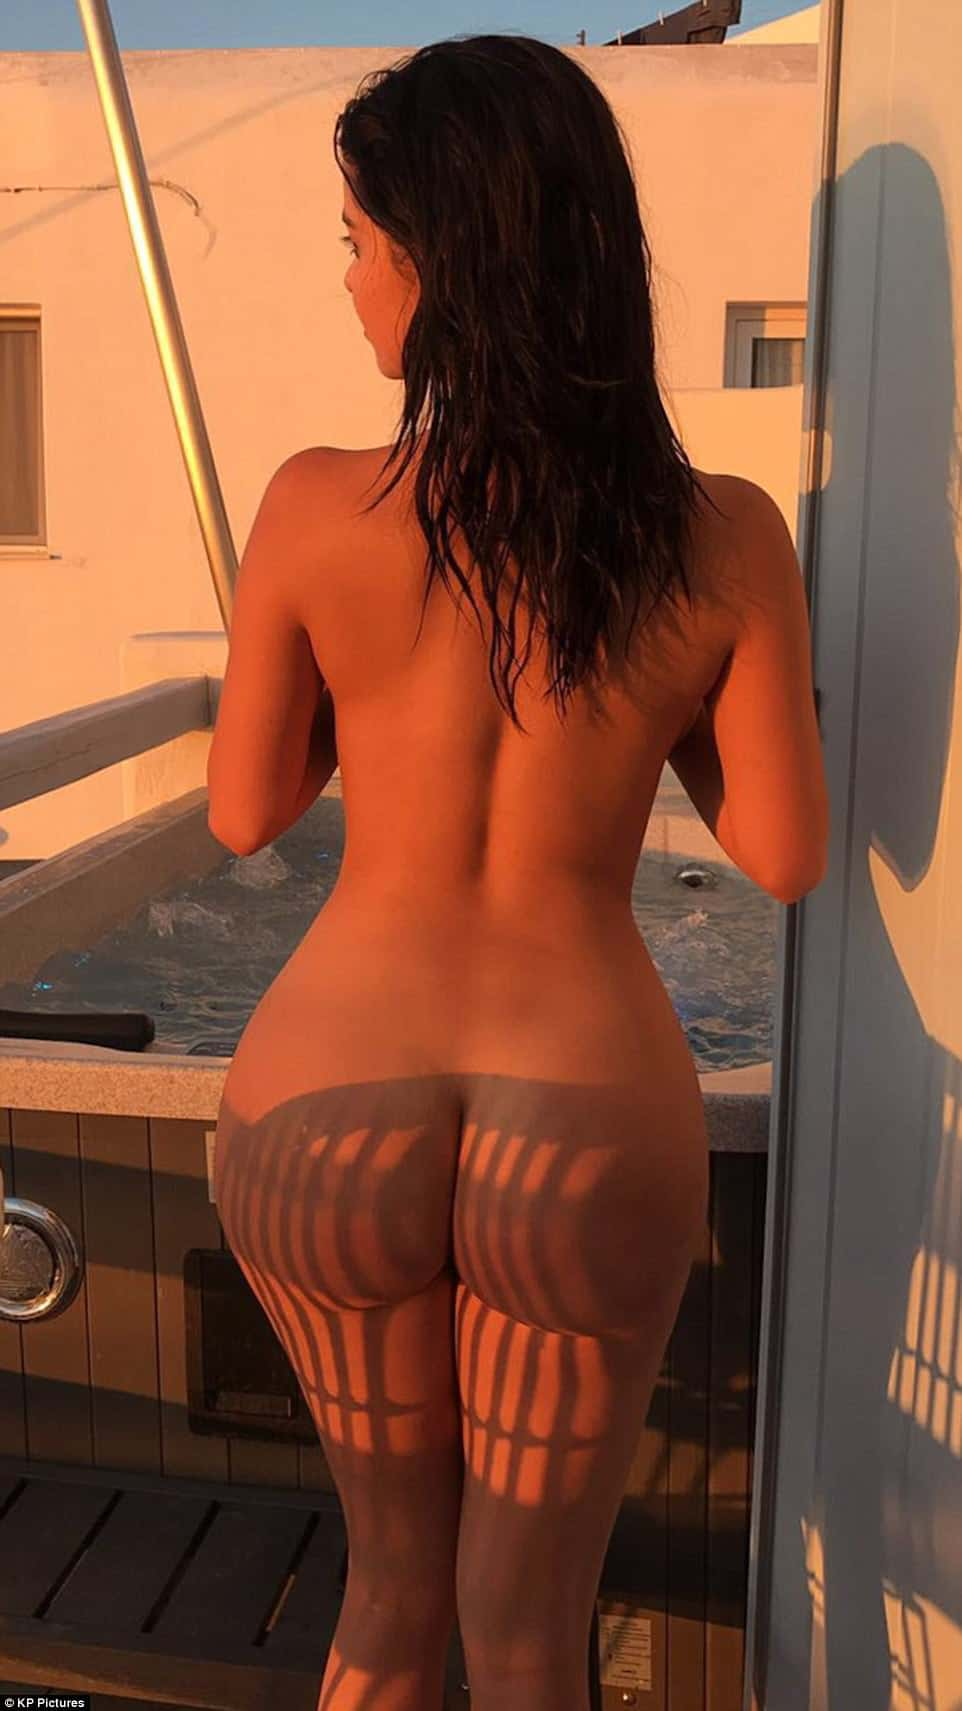 Demi rose mawby naked